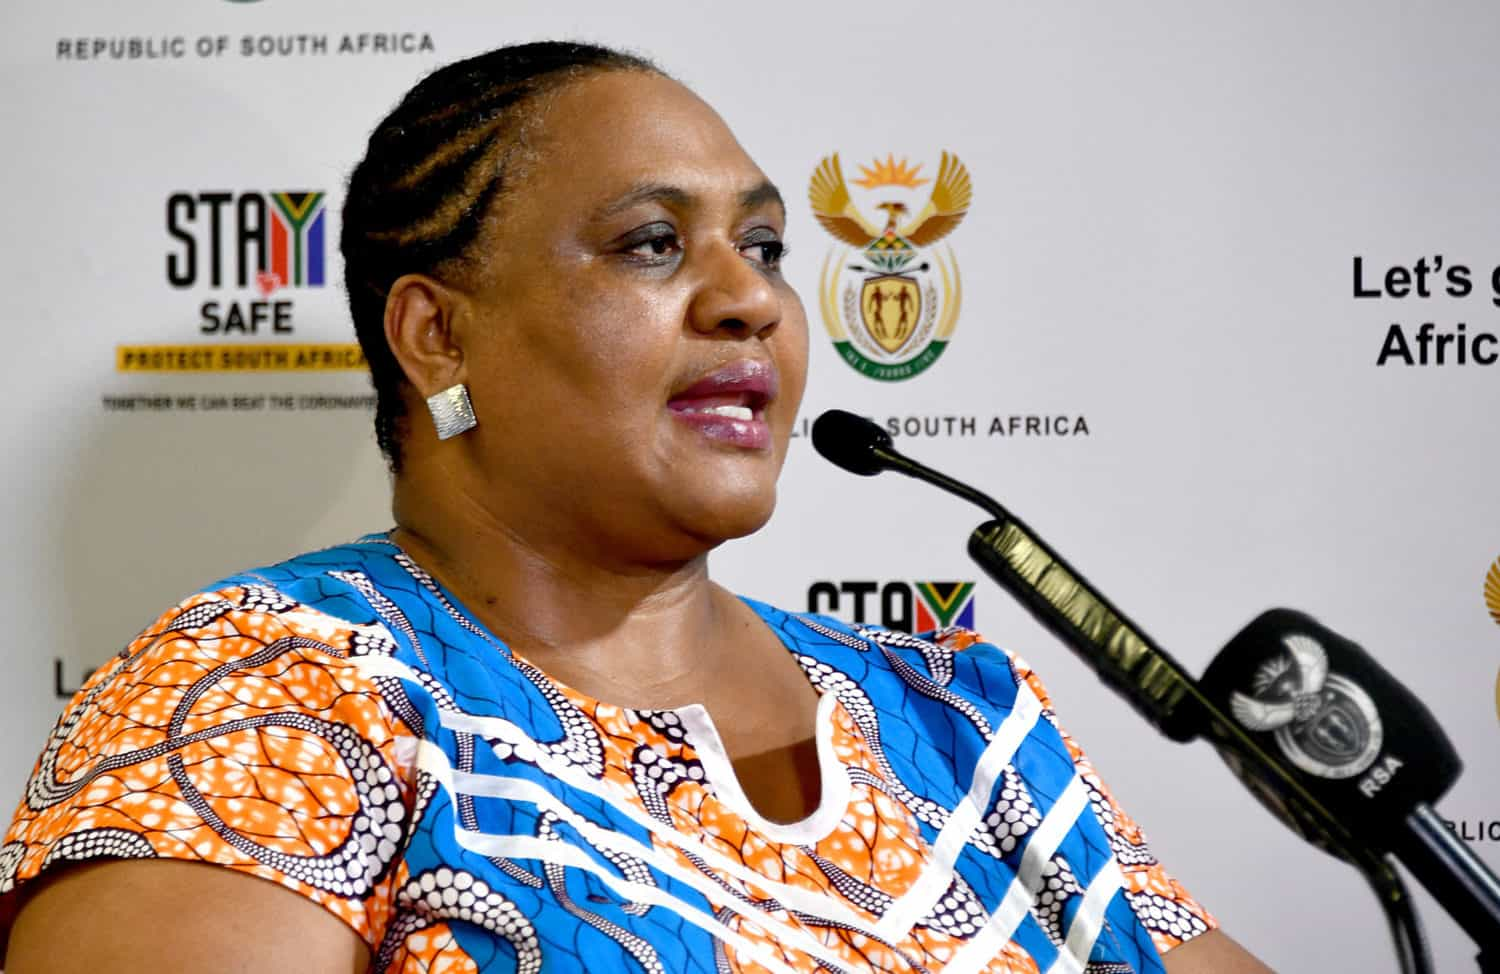 The minister of agriculture, land reform and rural development, Thoko Didiza. Photo: GCIS/Flickr